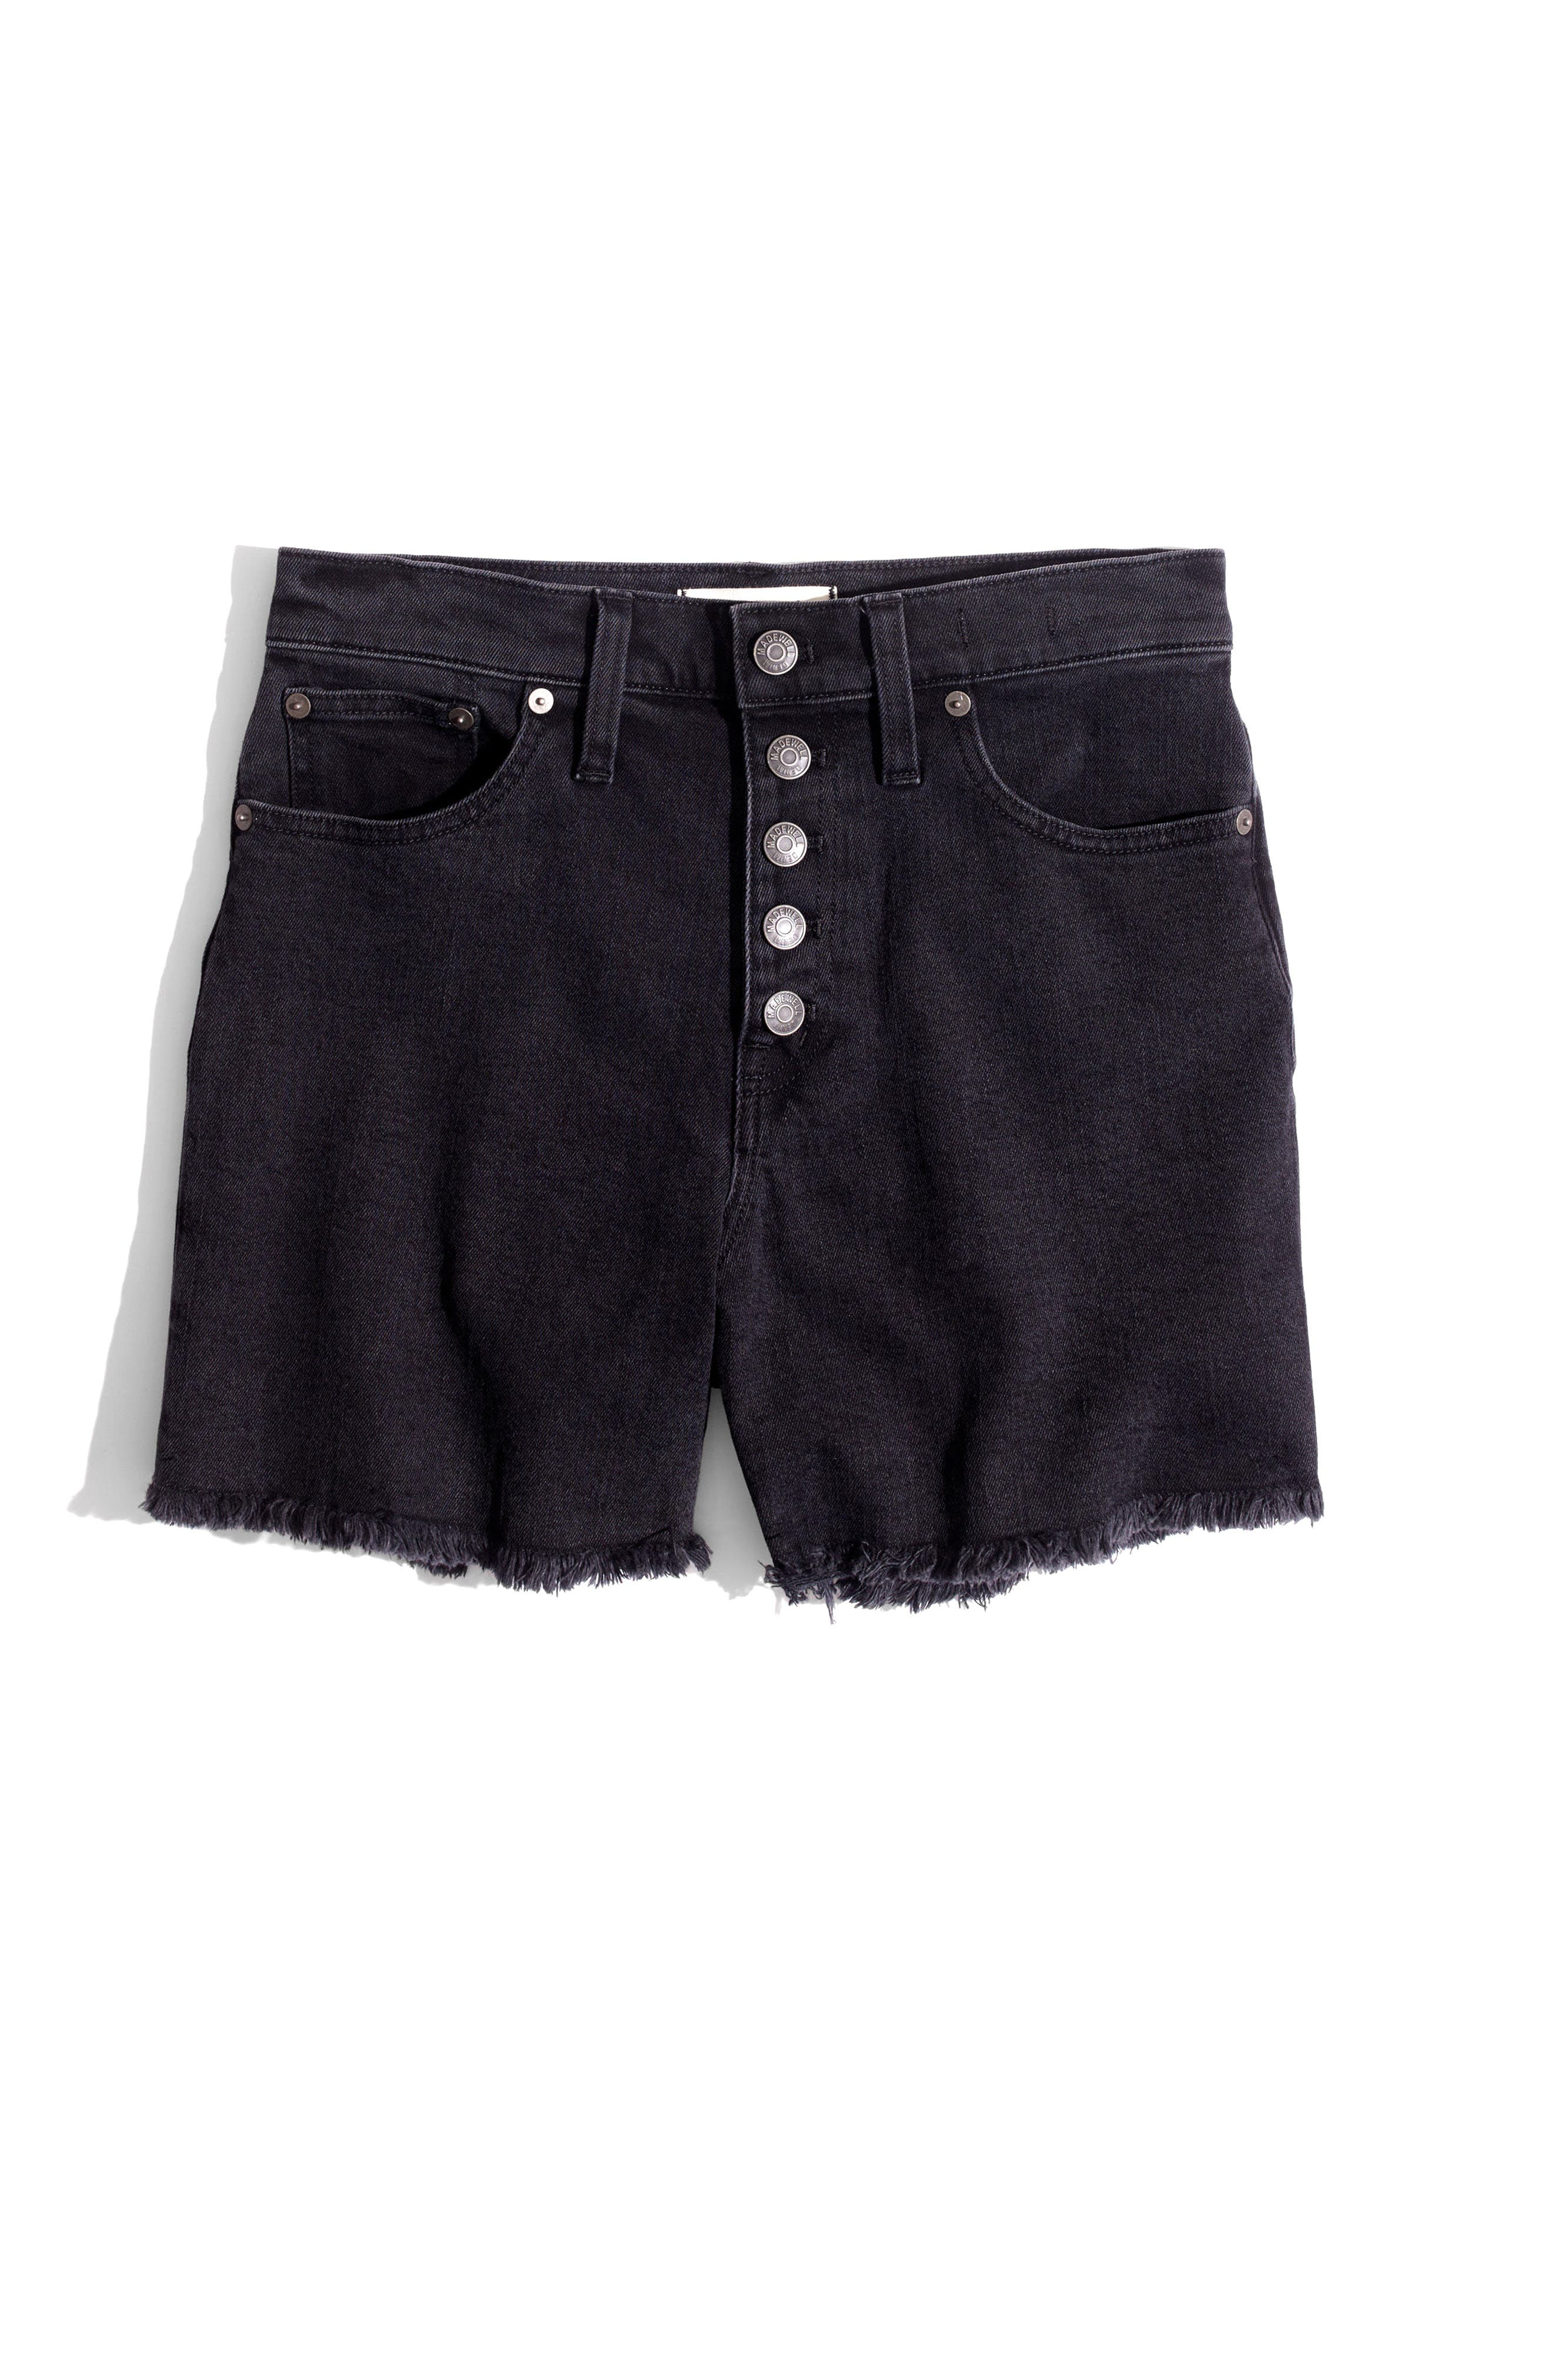 High Rise Denim Shorts,                             Alternate thumbnail 4, color,                             001